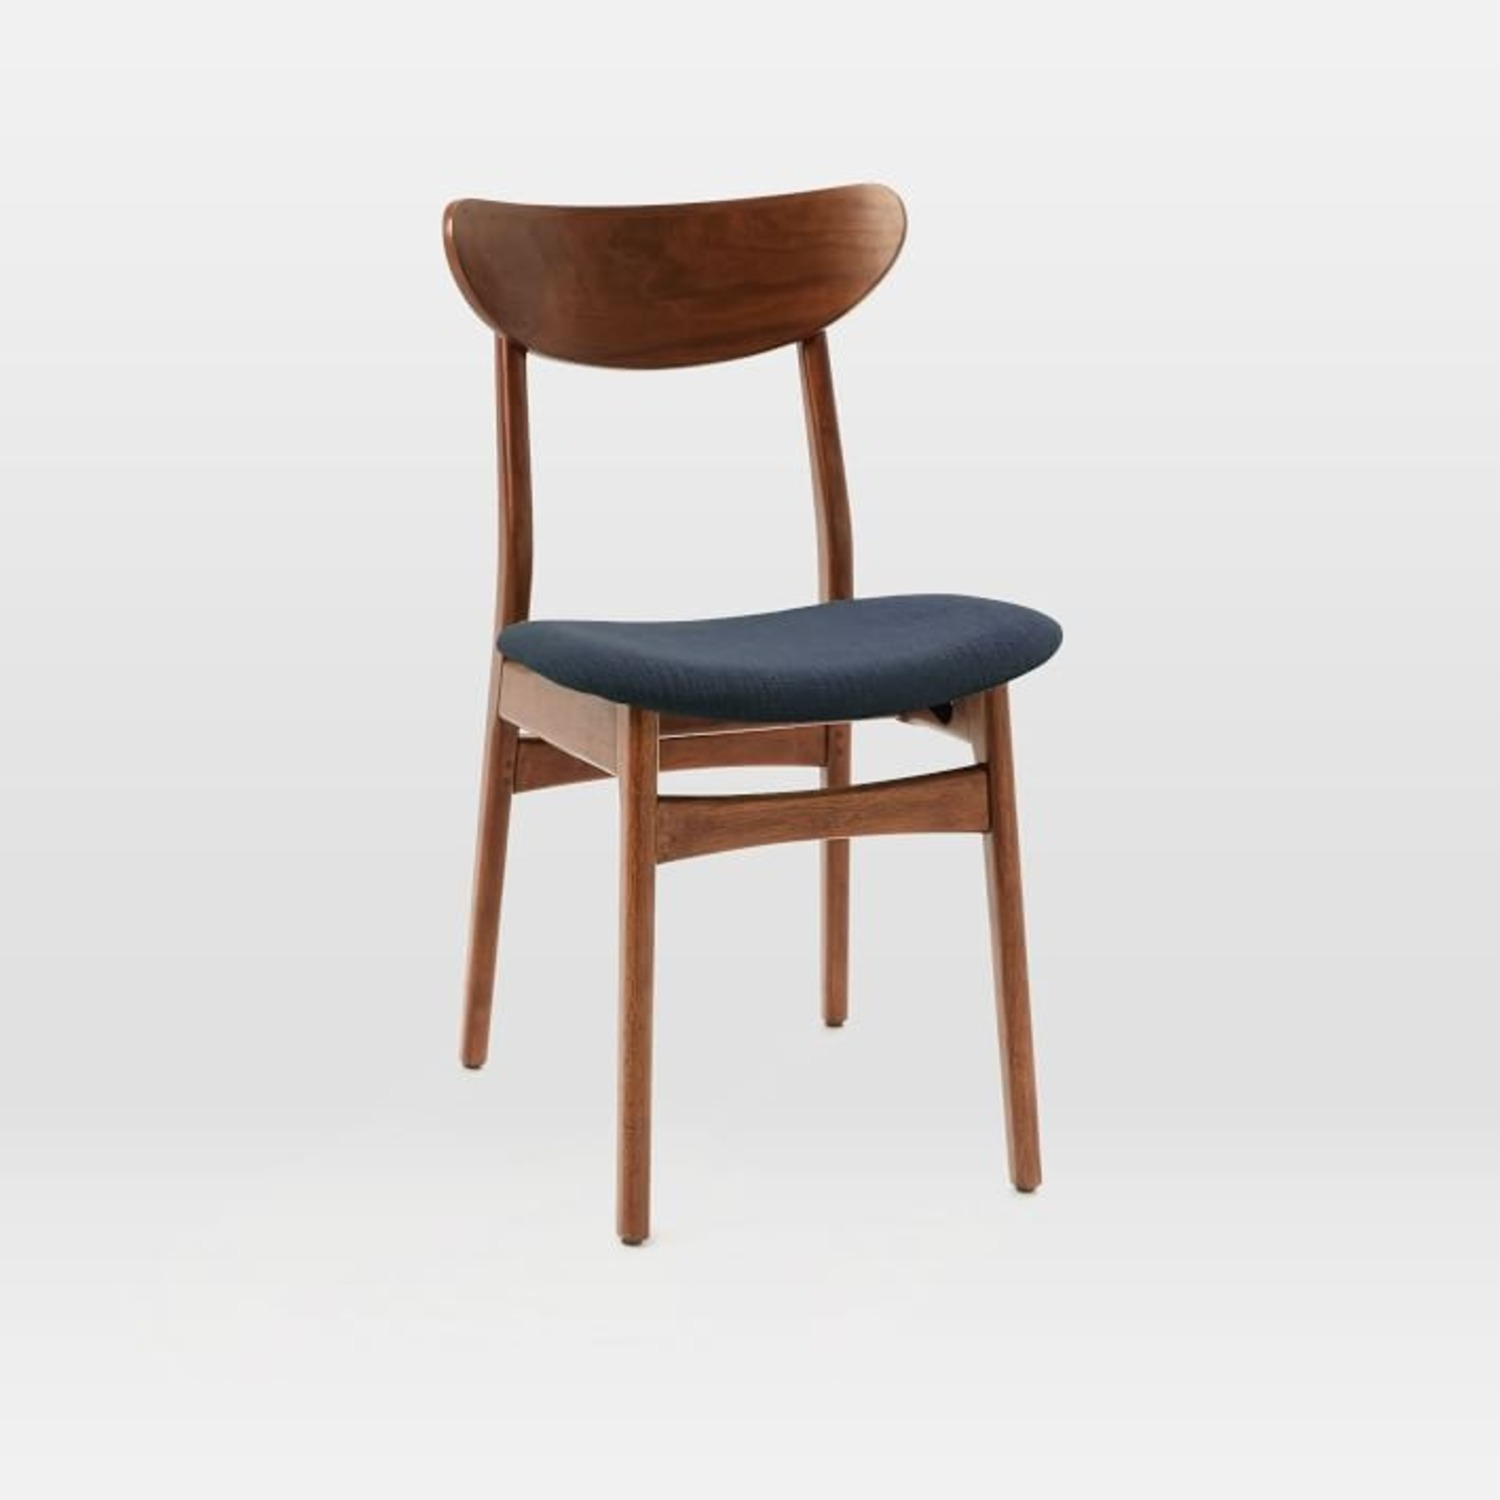 West Elm Classic Cafe Dining Chair (Set of 2) - image-2